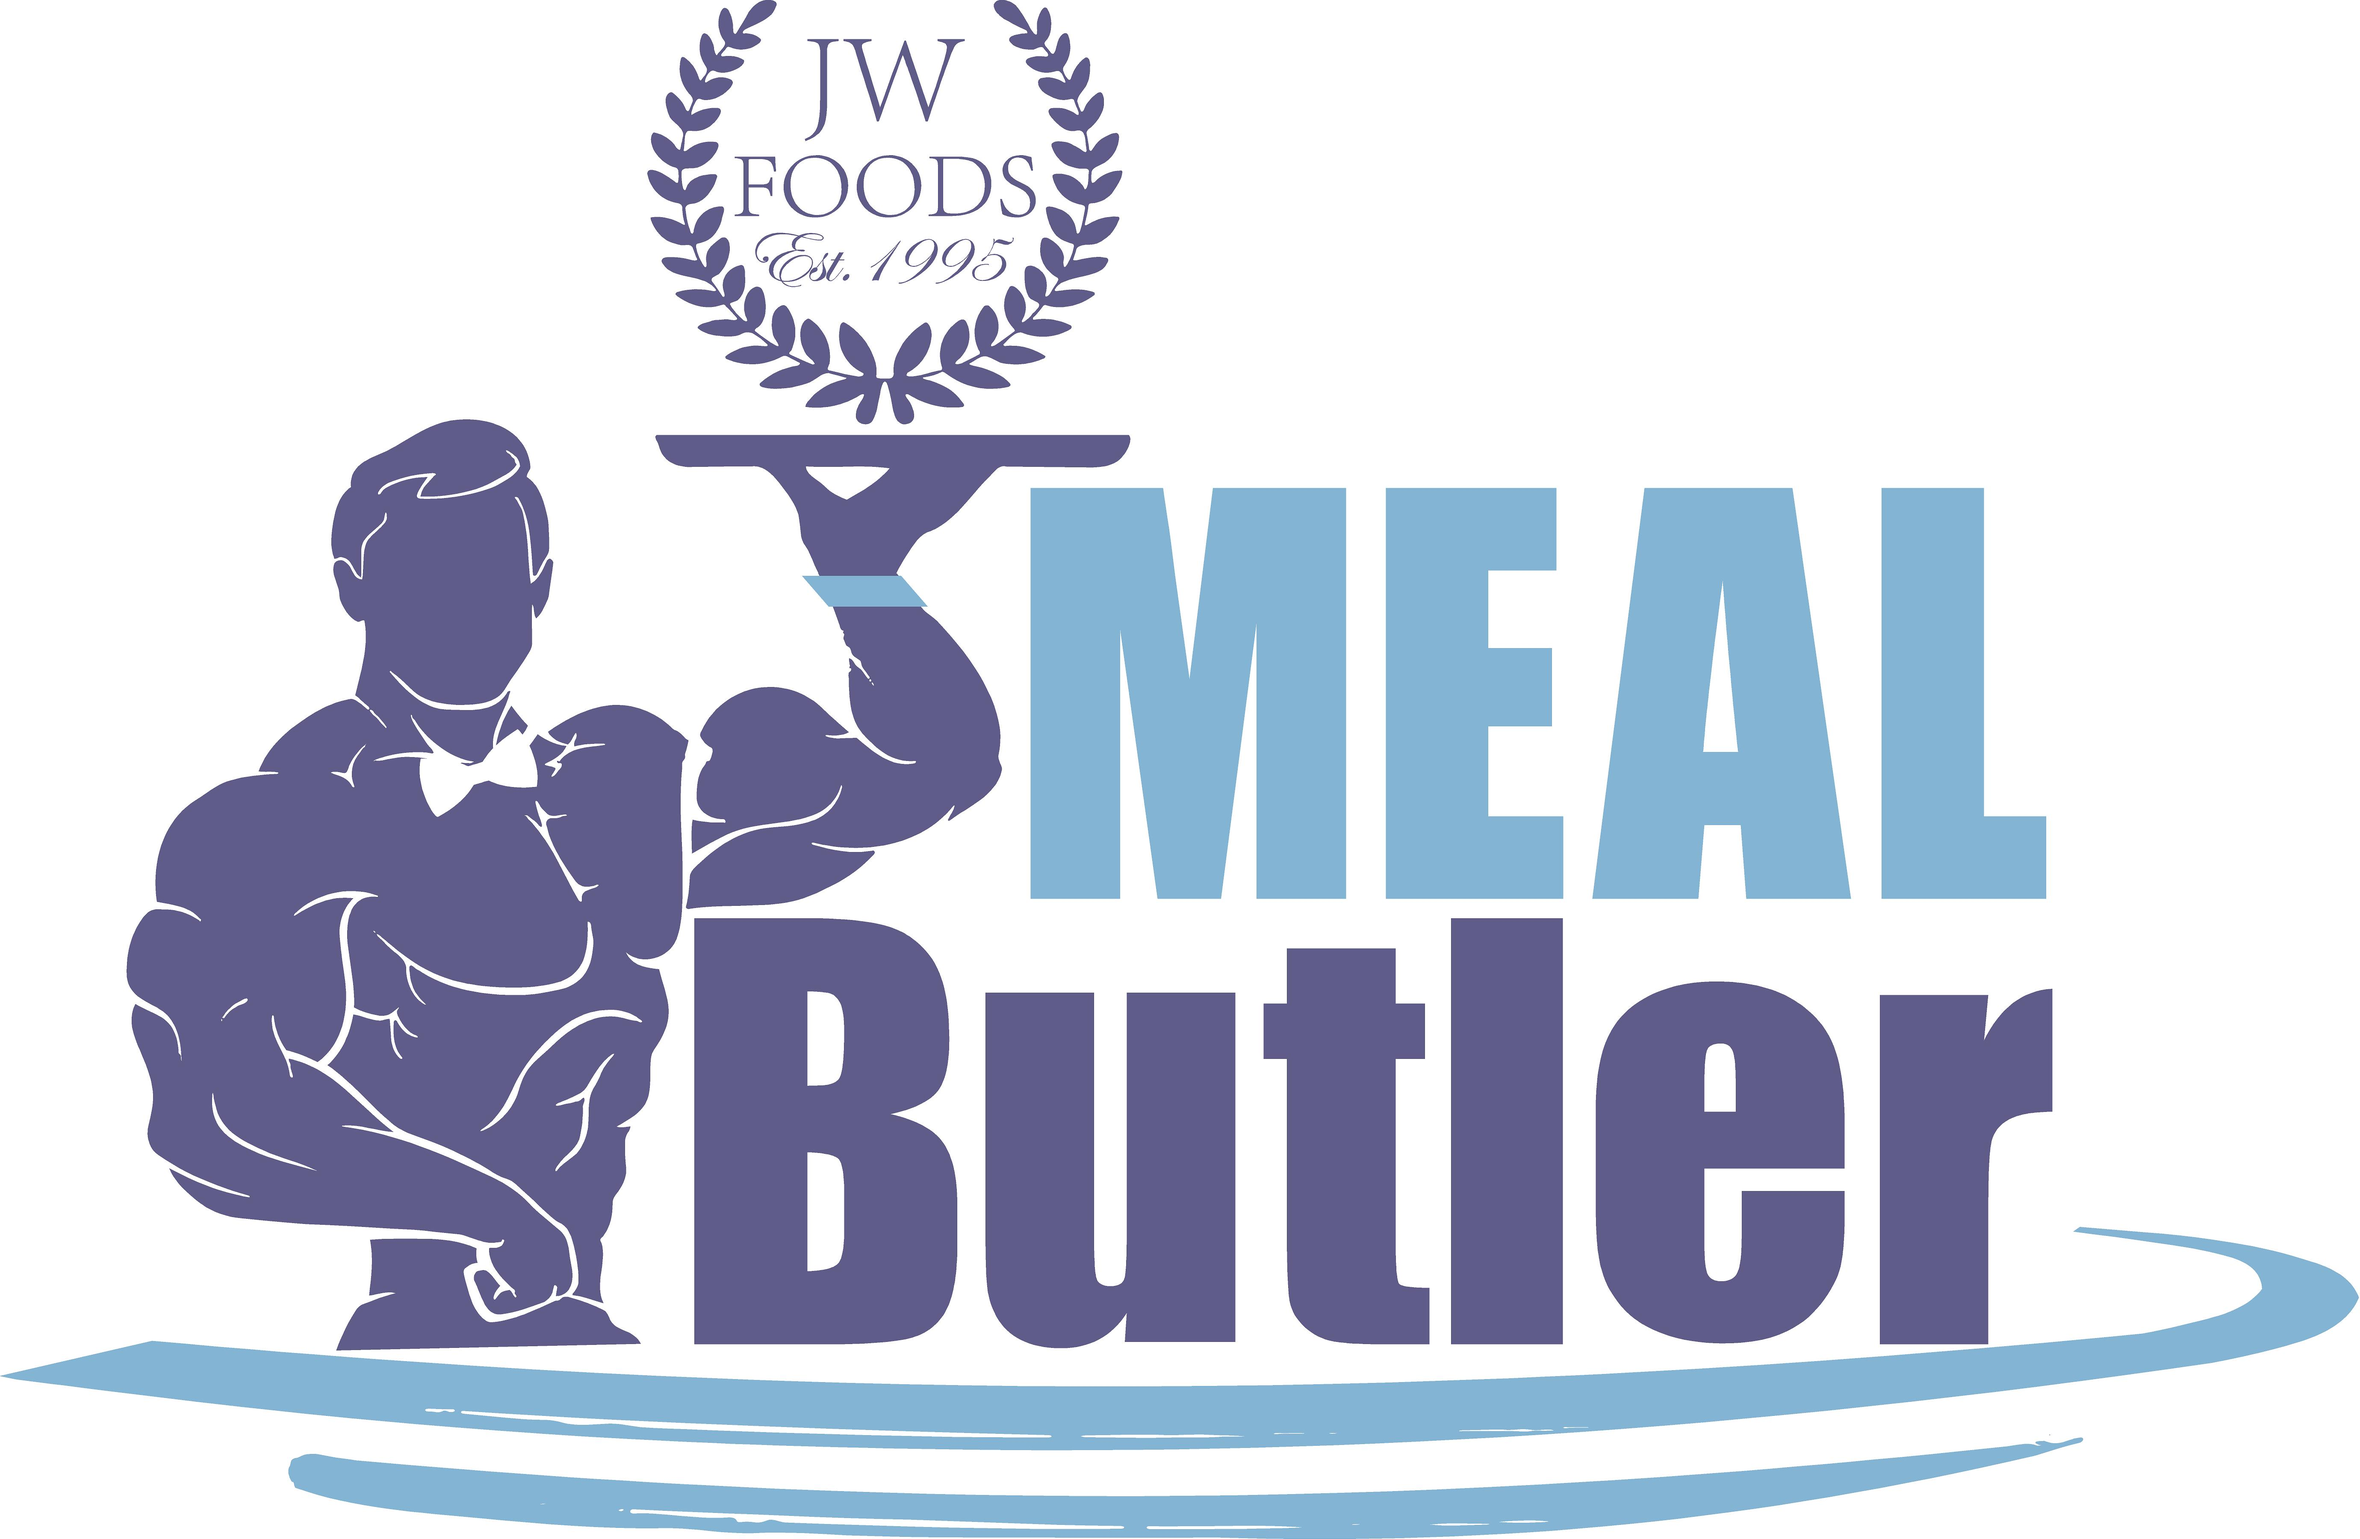 Products Delivery - Grocery Deliveries: JW Foods - MealButler